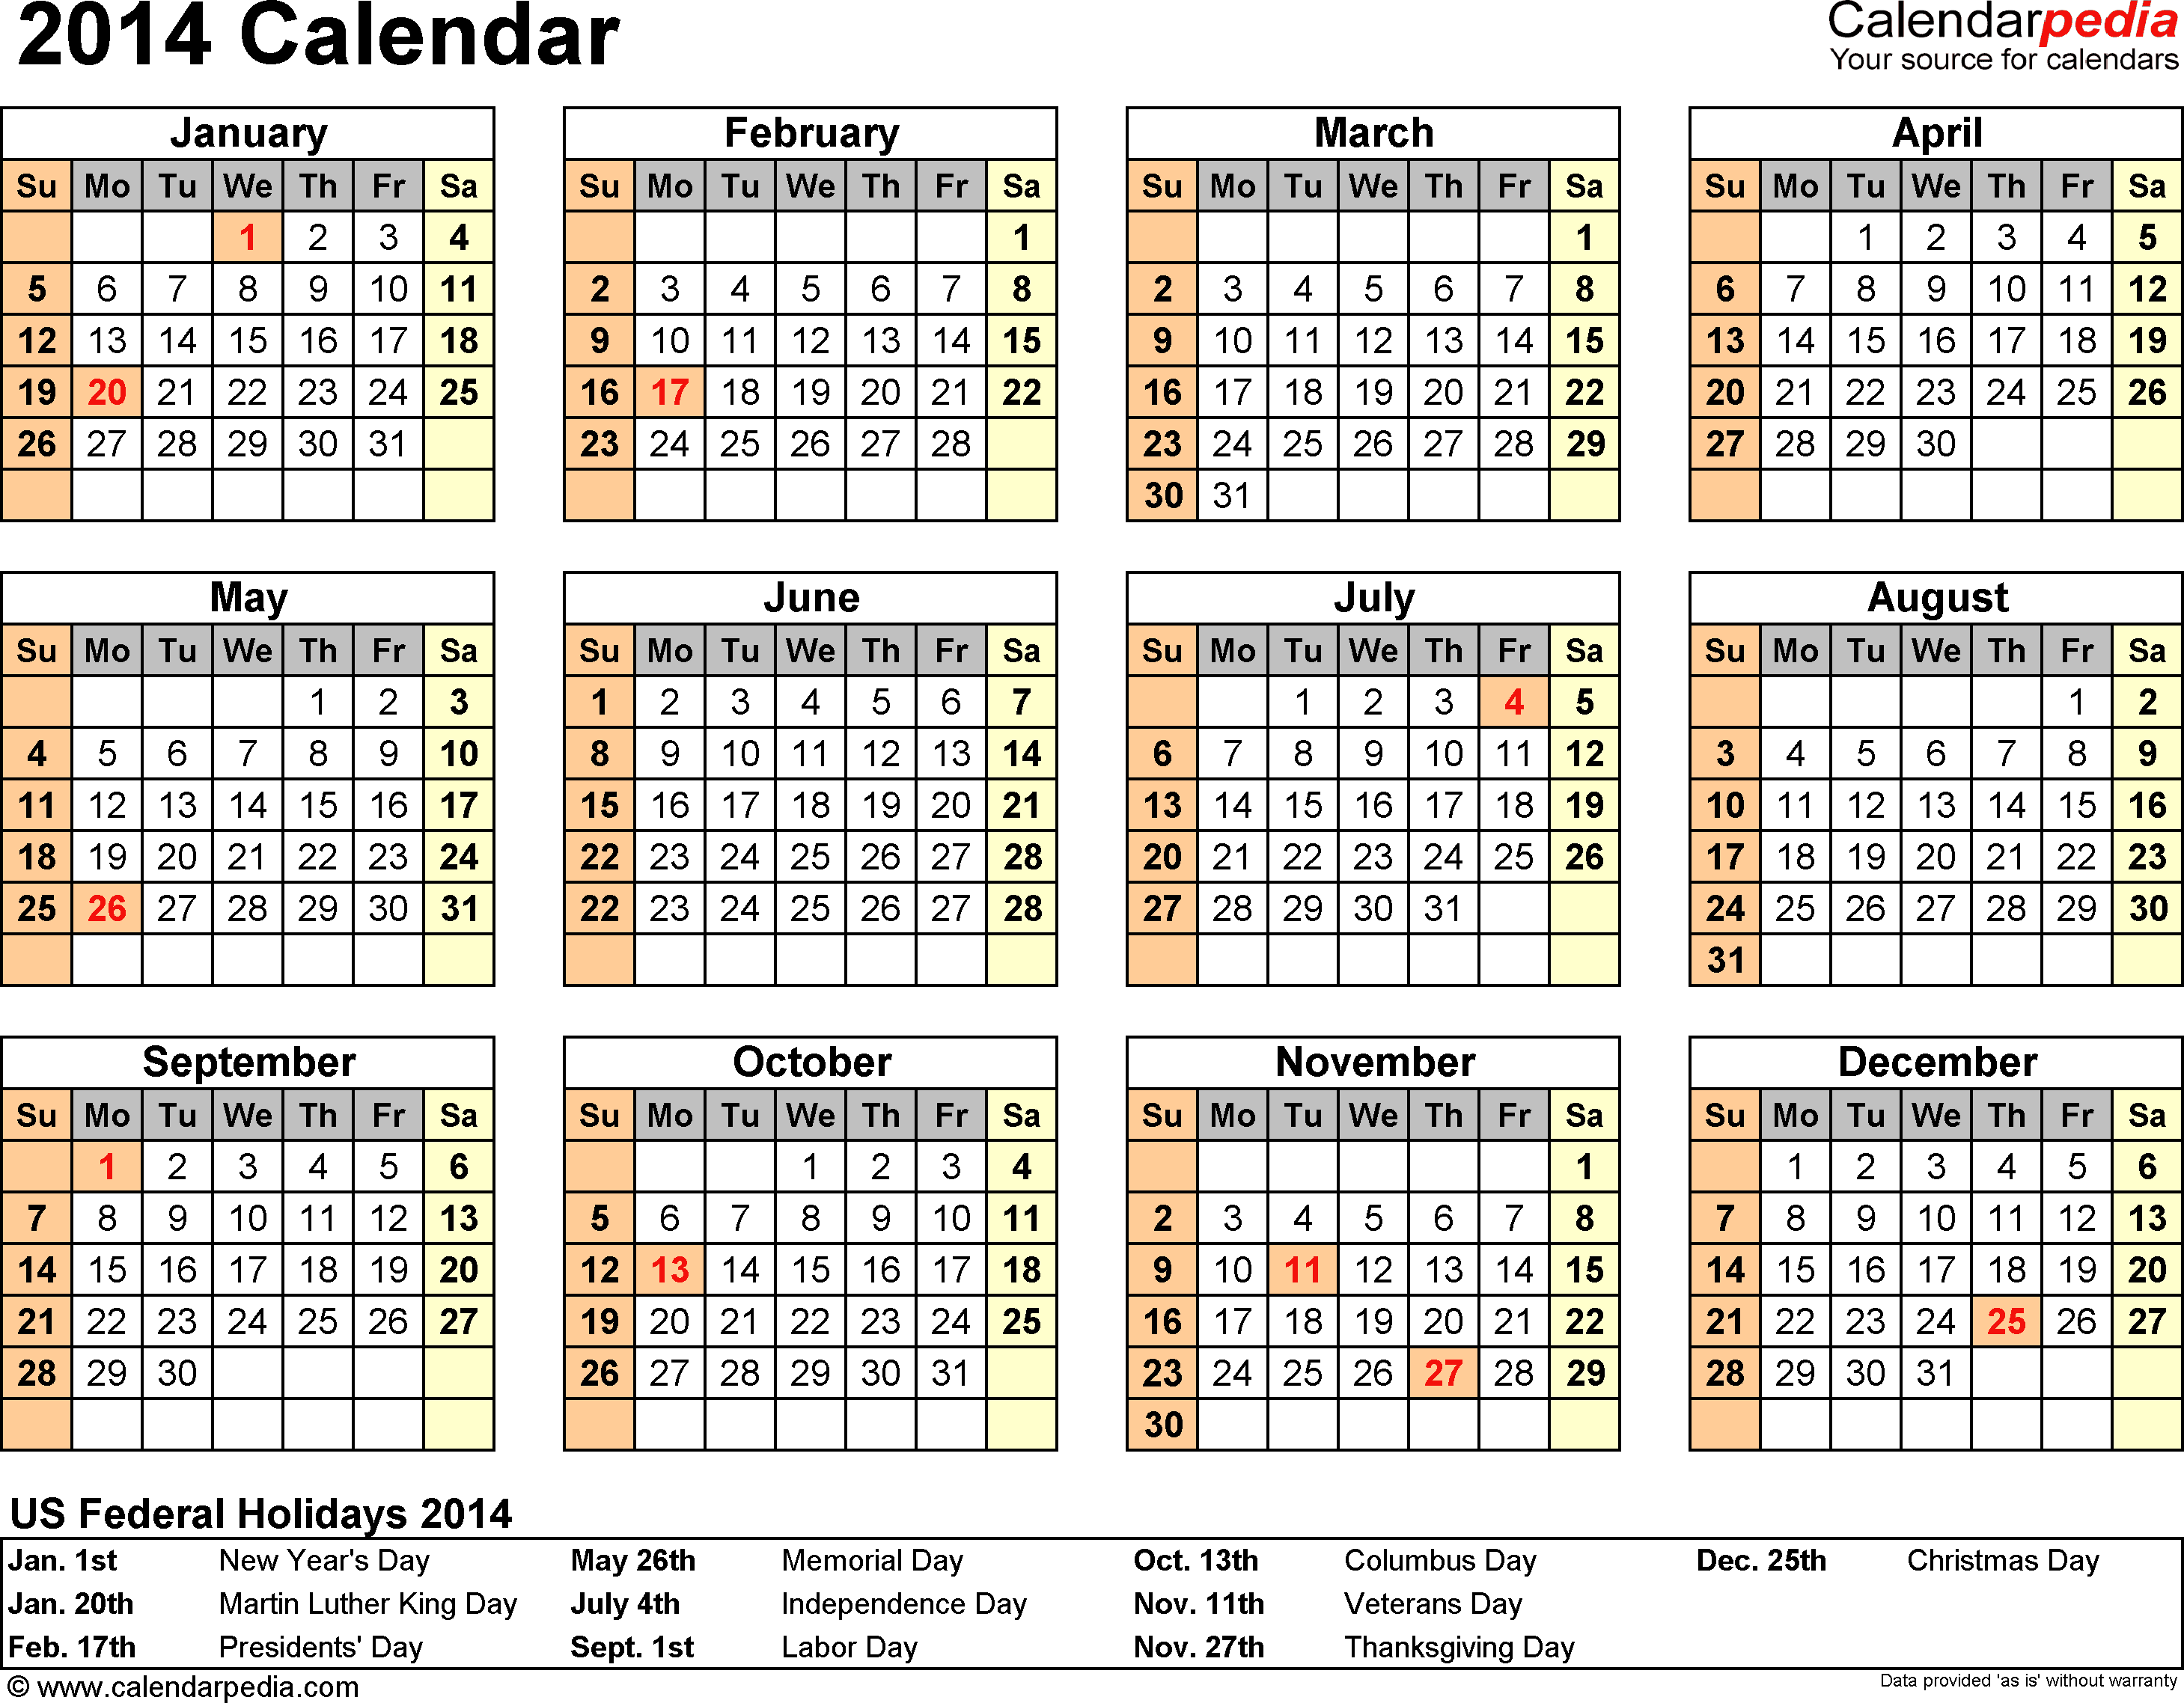 Template 8: 2014 Calendar for Word, year at a glance, 1 page